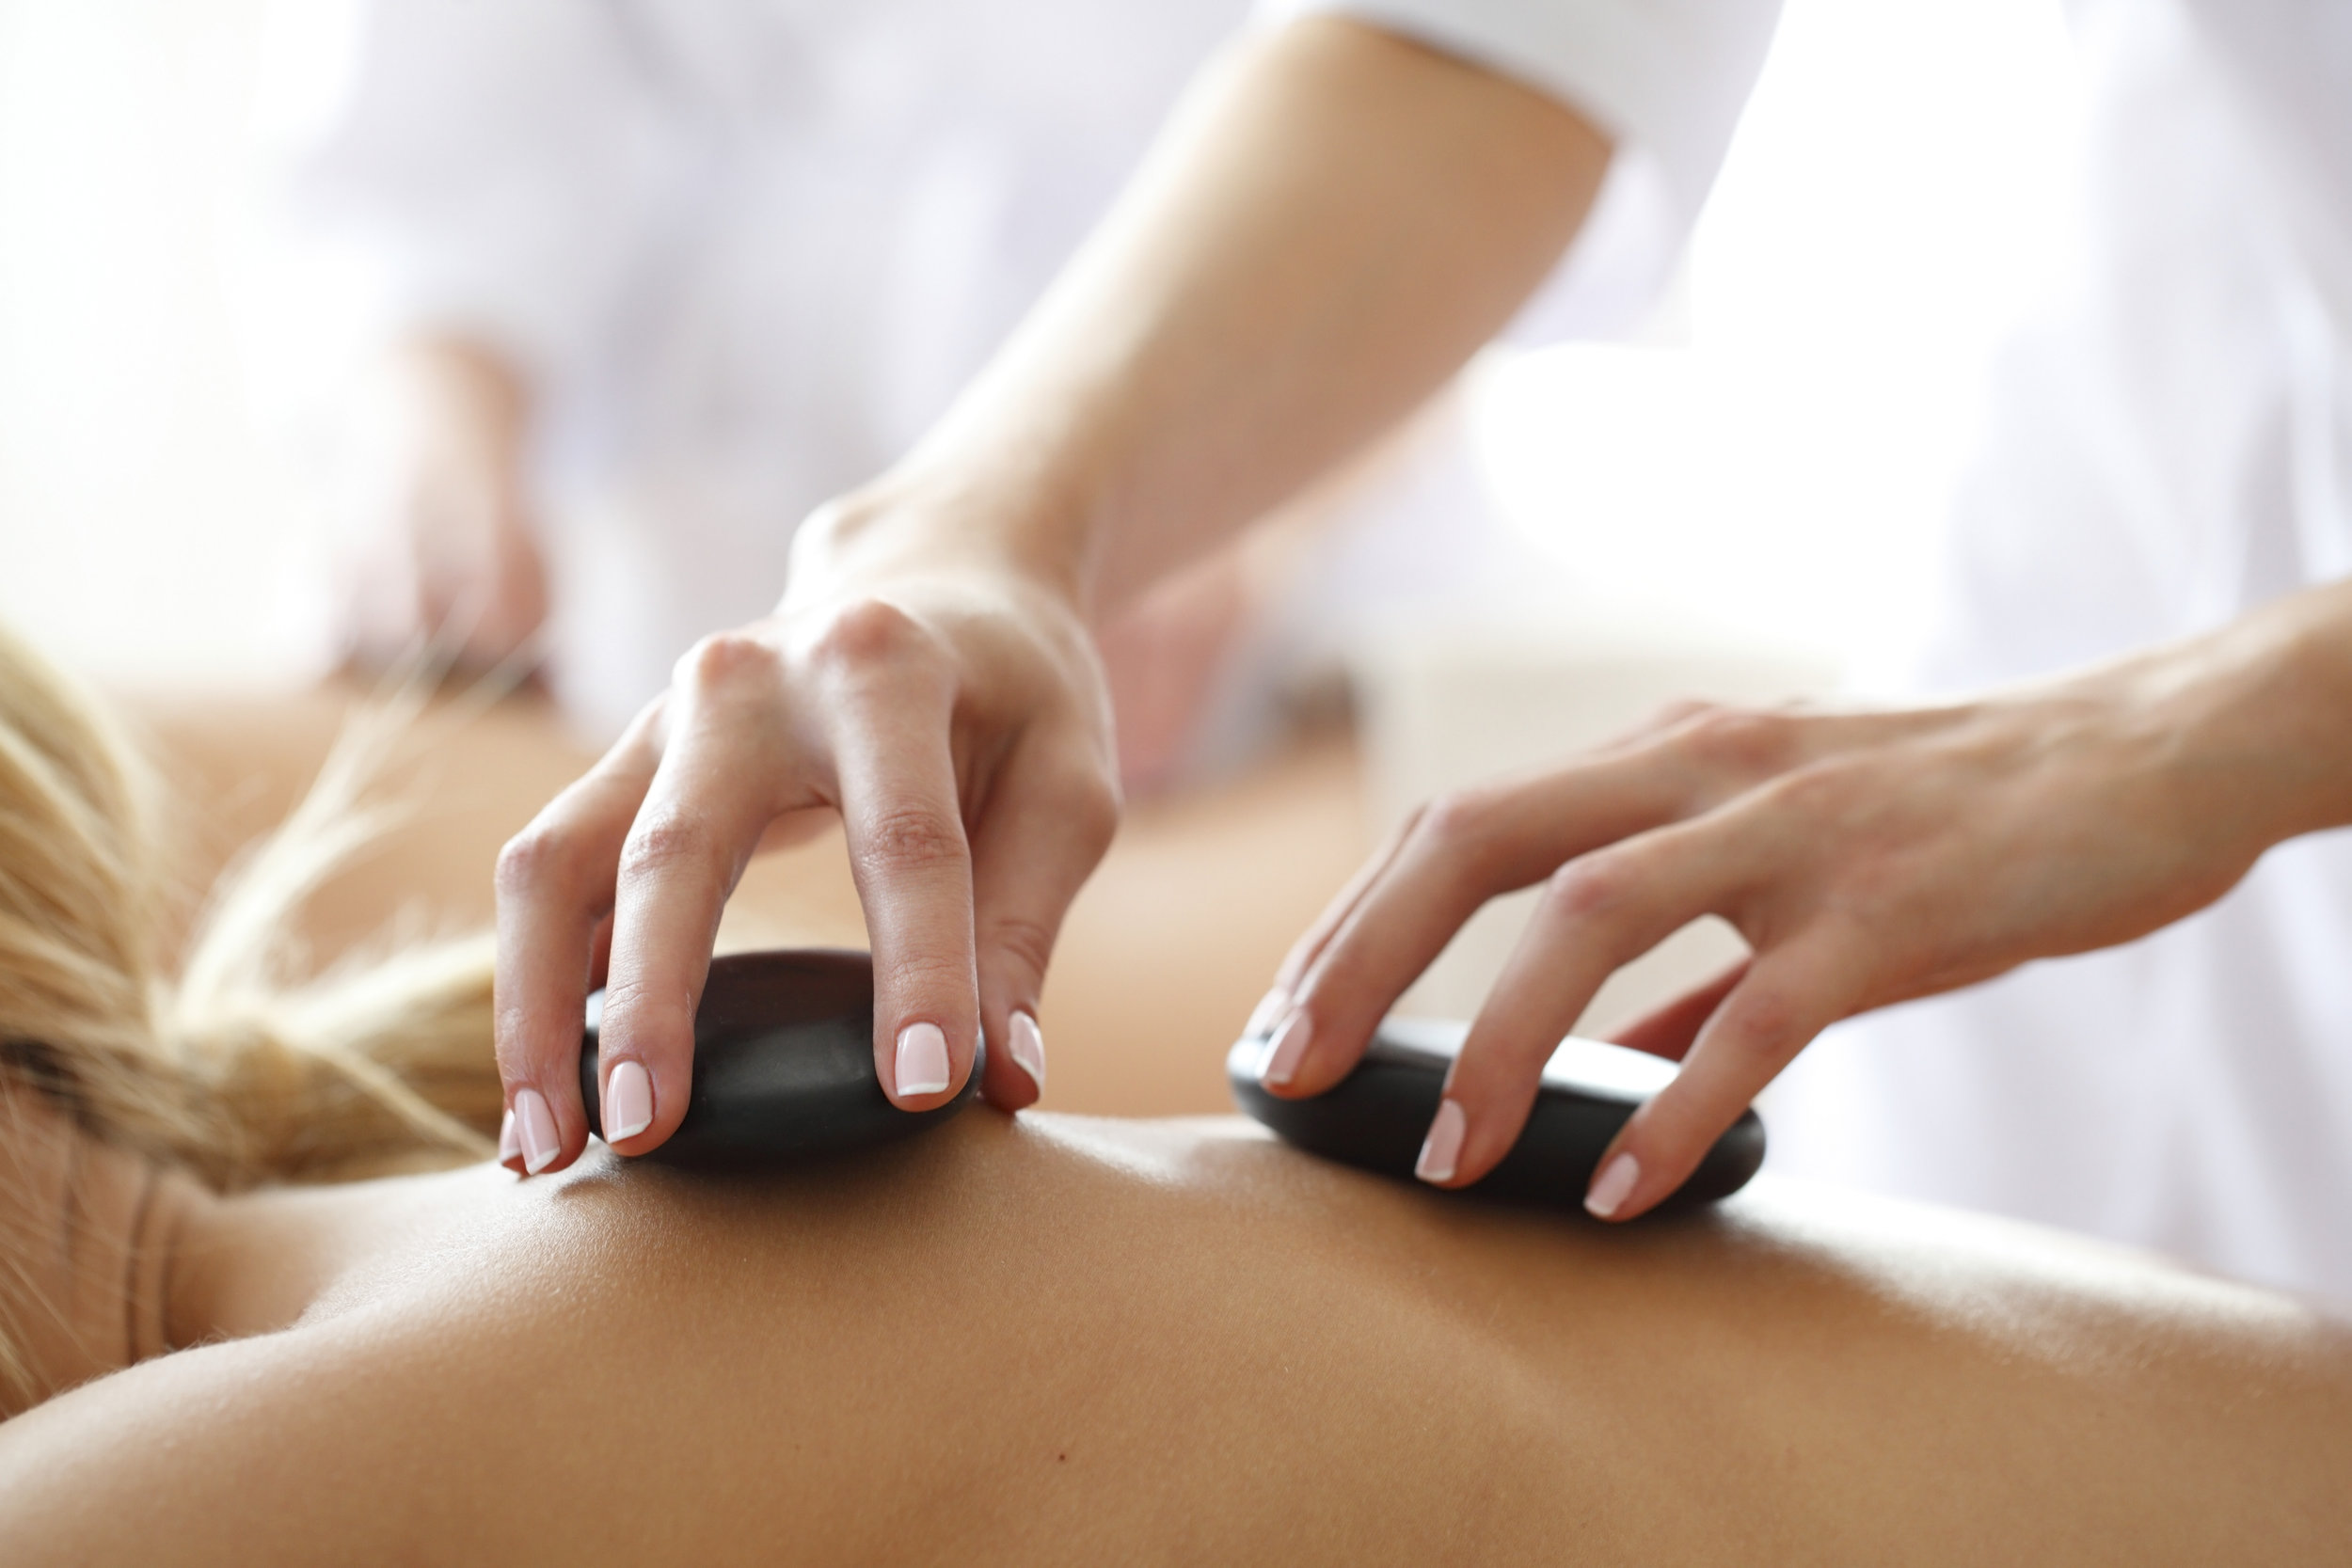 Hot Stone Massage - Hot stone massage therapy promotes deep muscle relaxation through the placement of smooth, water-heated stones at key points on the body. The direct heat of the stones relaxes muscles, allowing the massage therapist to access deeper muscle layers and enhancing the effectiveness of deep tissue massage. Hot stone treatment also improves circulation and blood flow within the body, reduces pain and discomfort during the massage, alleviates stress, enhances mental clarity, and regulates symptoms associated with painful conditions such as arthritis.